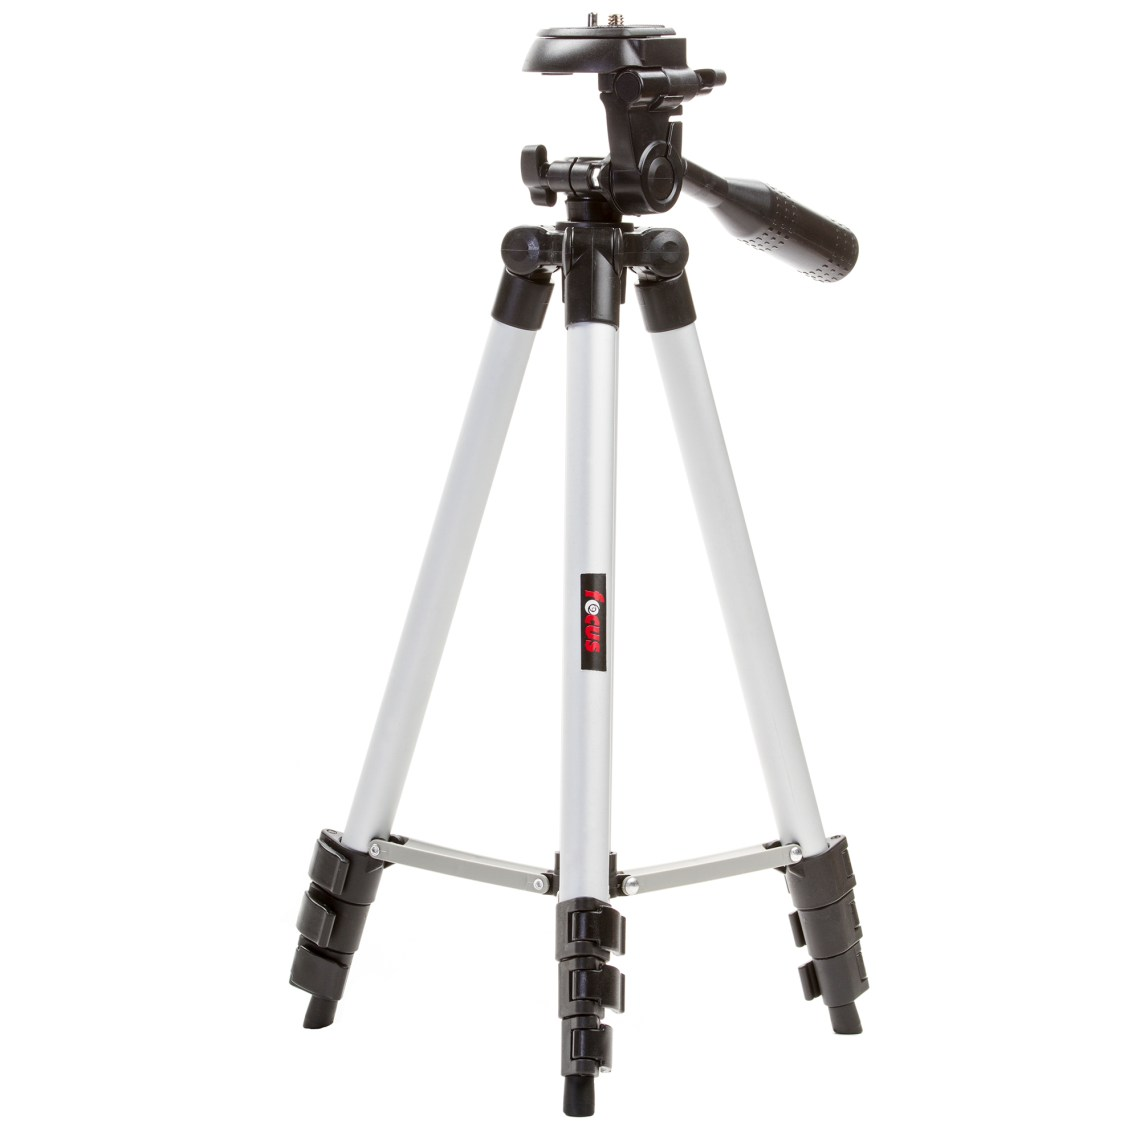 "This 50"" tripod is a great solution for the beginner photographer who's using a small point and shoot camera or camcorder. It's aluminum construction is extremely lightweight so it's very easy to take with you when you need the ability to take photos without risking image blur. A built-in bubble level and 3-way fluid pan head makes it easy to line up your shot perfectly. From family photos at home to landscape scenes in the park\, you'll love the results this tripod can deliver."